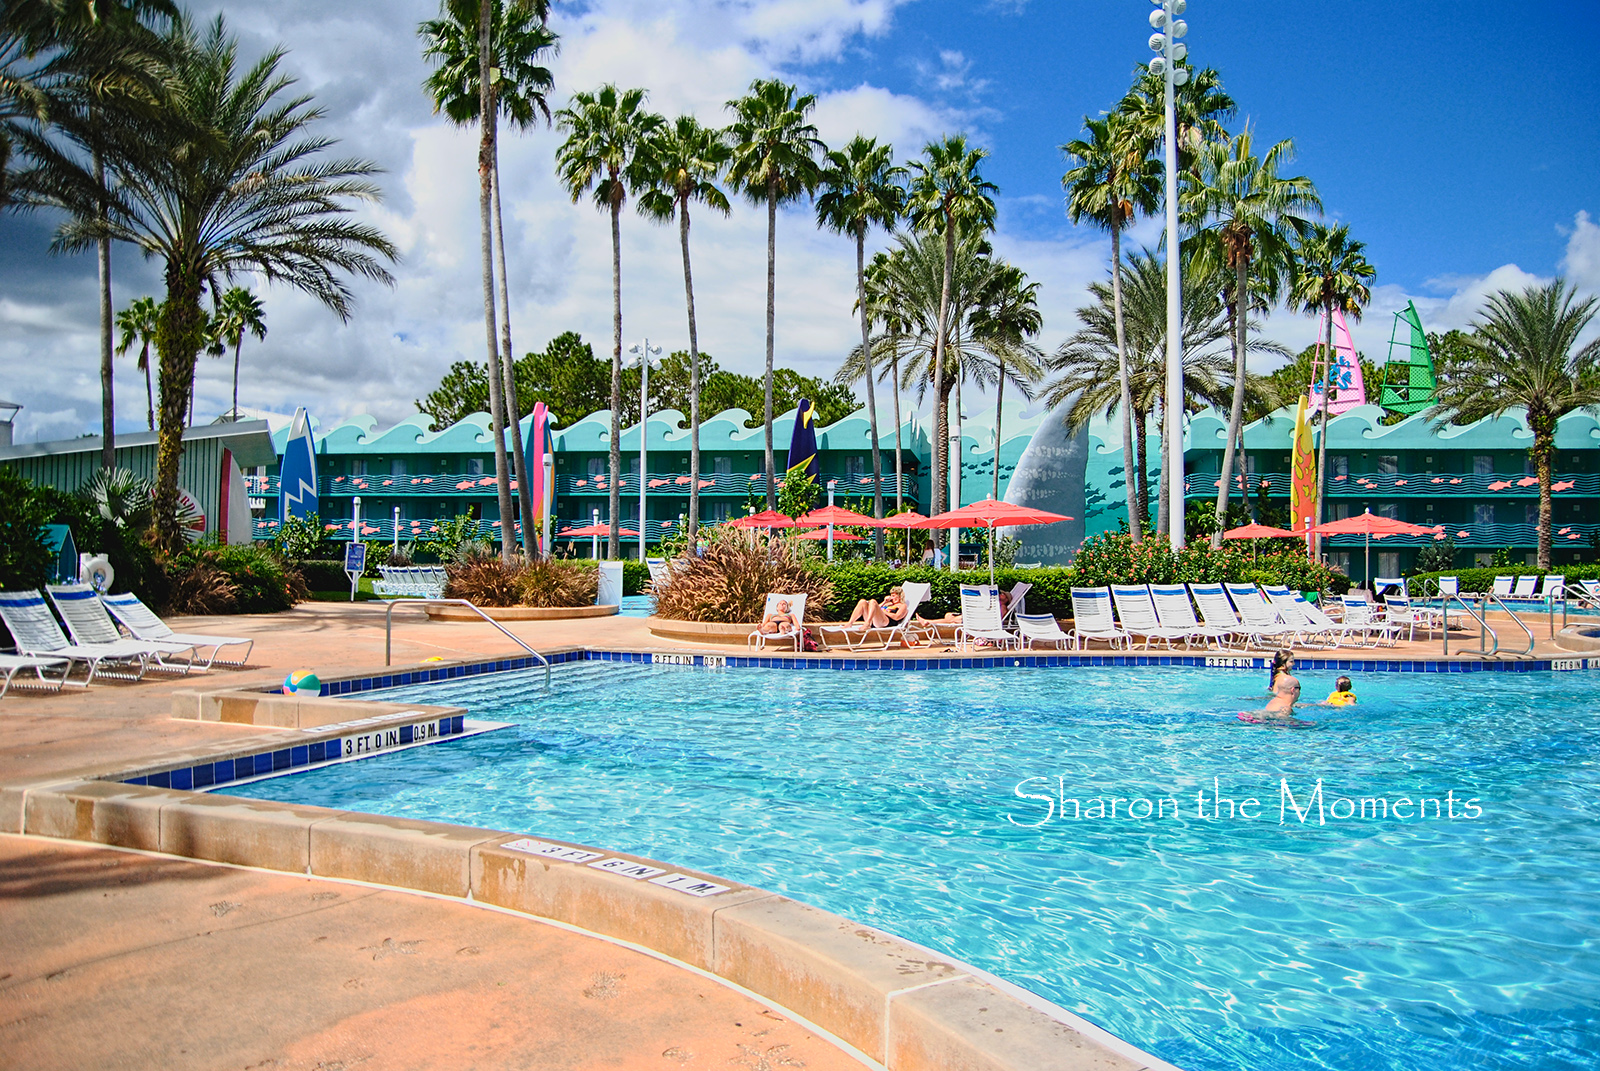 Our October visit to Walt Disney World All Star Sports Resort|Sharon the Moments Blog